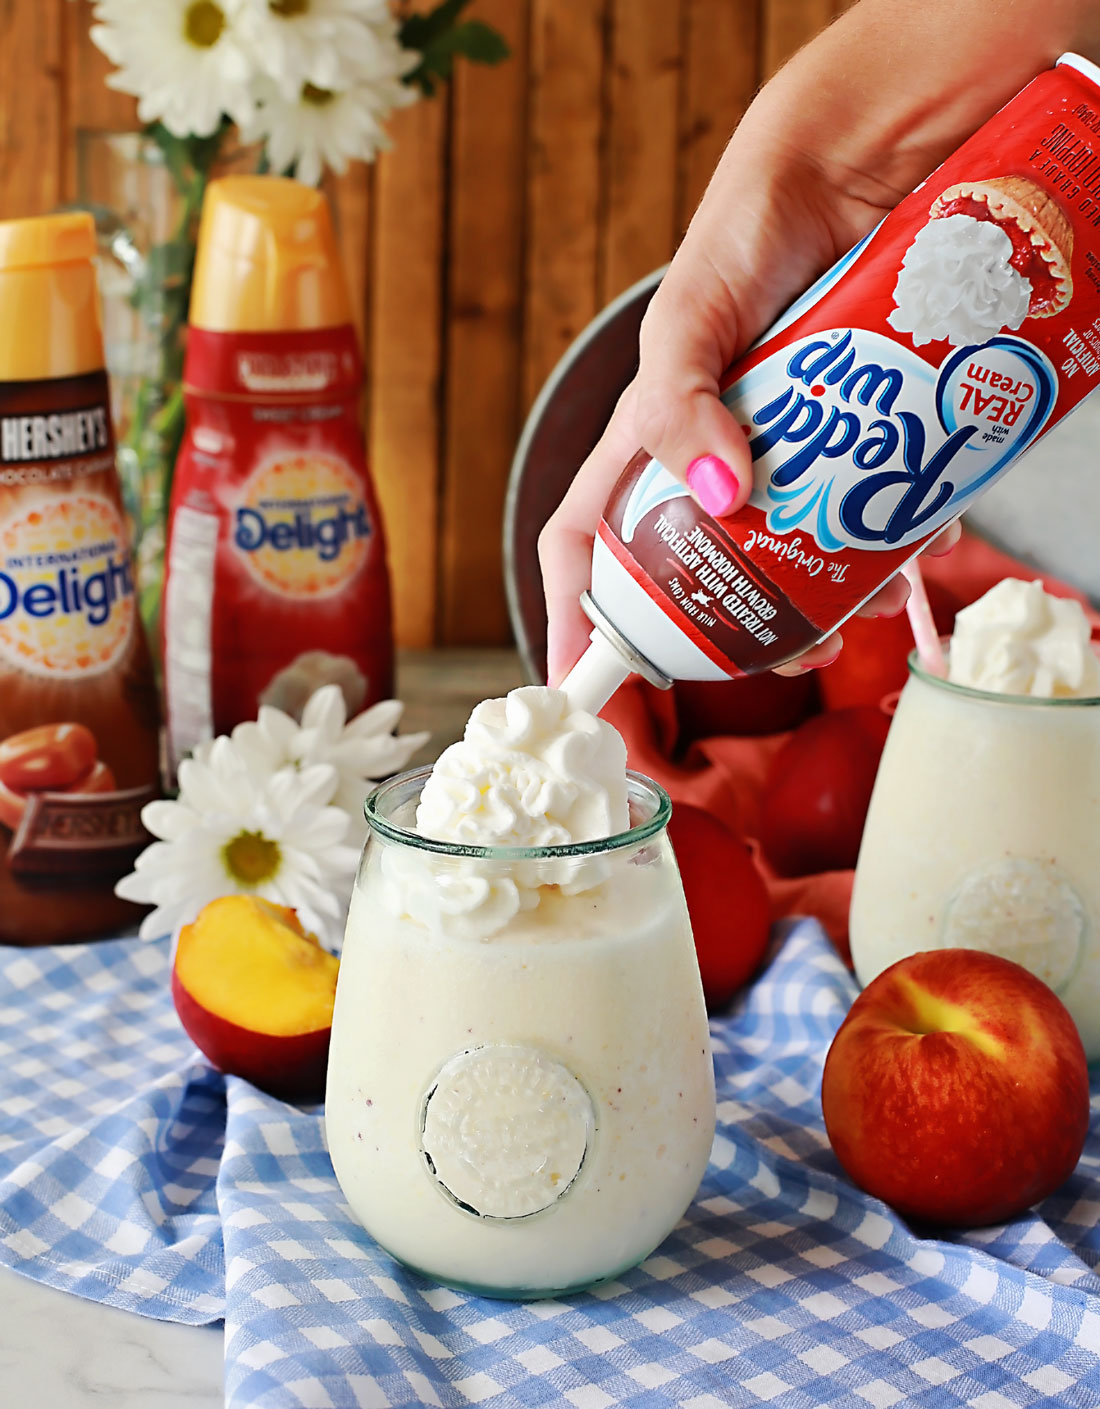 Peach Frappe topped with Reddi-wip by Flirting with Flavor!